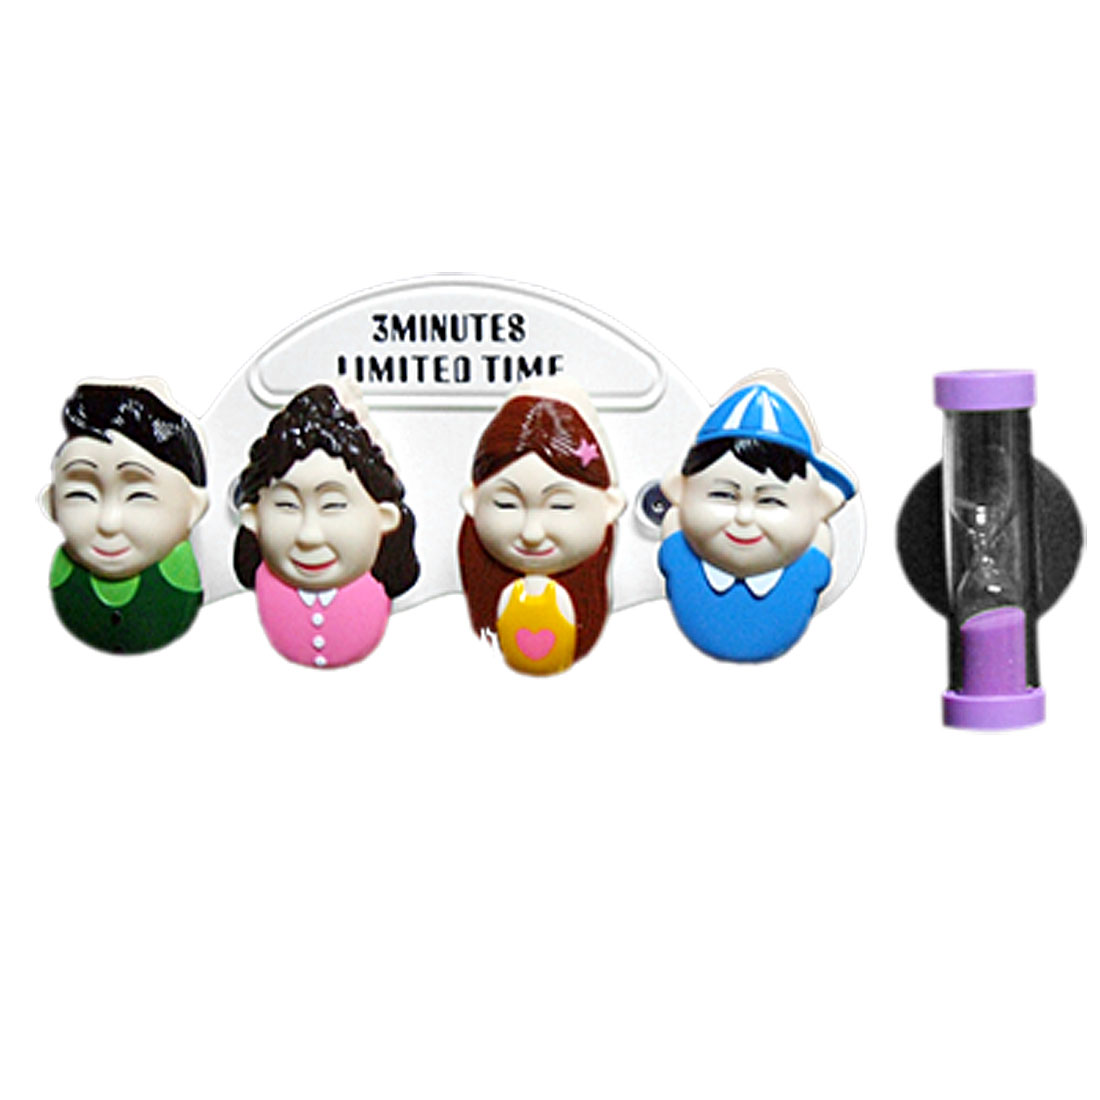 Family Cute Bathroom Toothbrush Holder w. Purple Hour Sandglass Timer